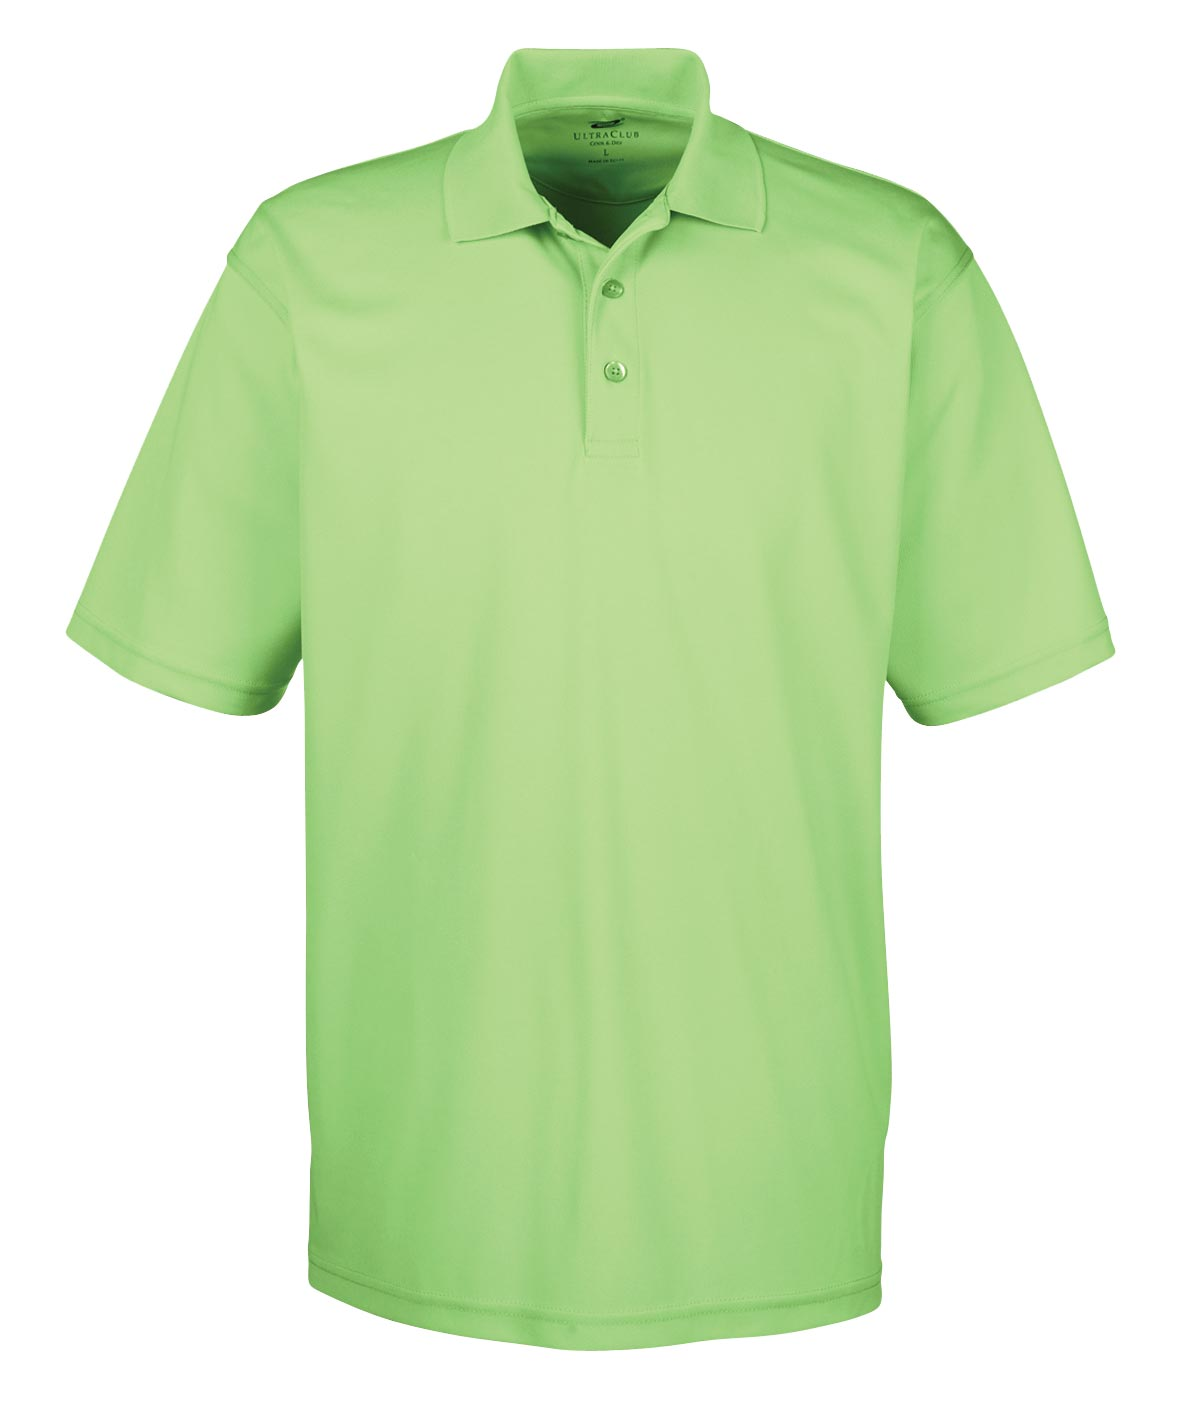 UltraClub Mens Cool & Dry Mesh Pique Polo